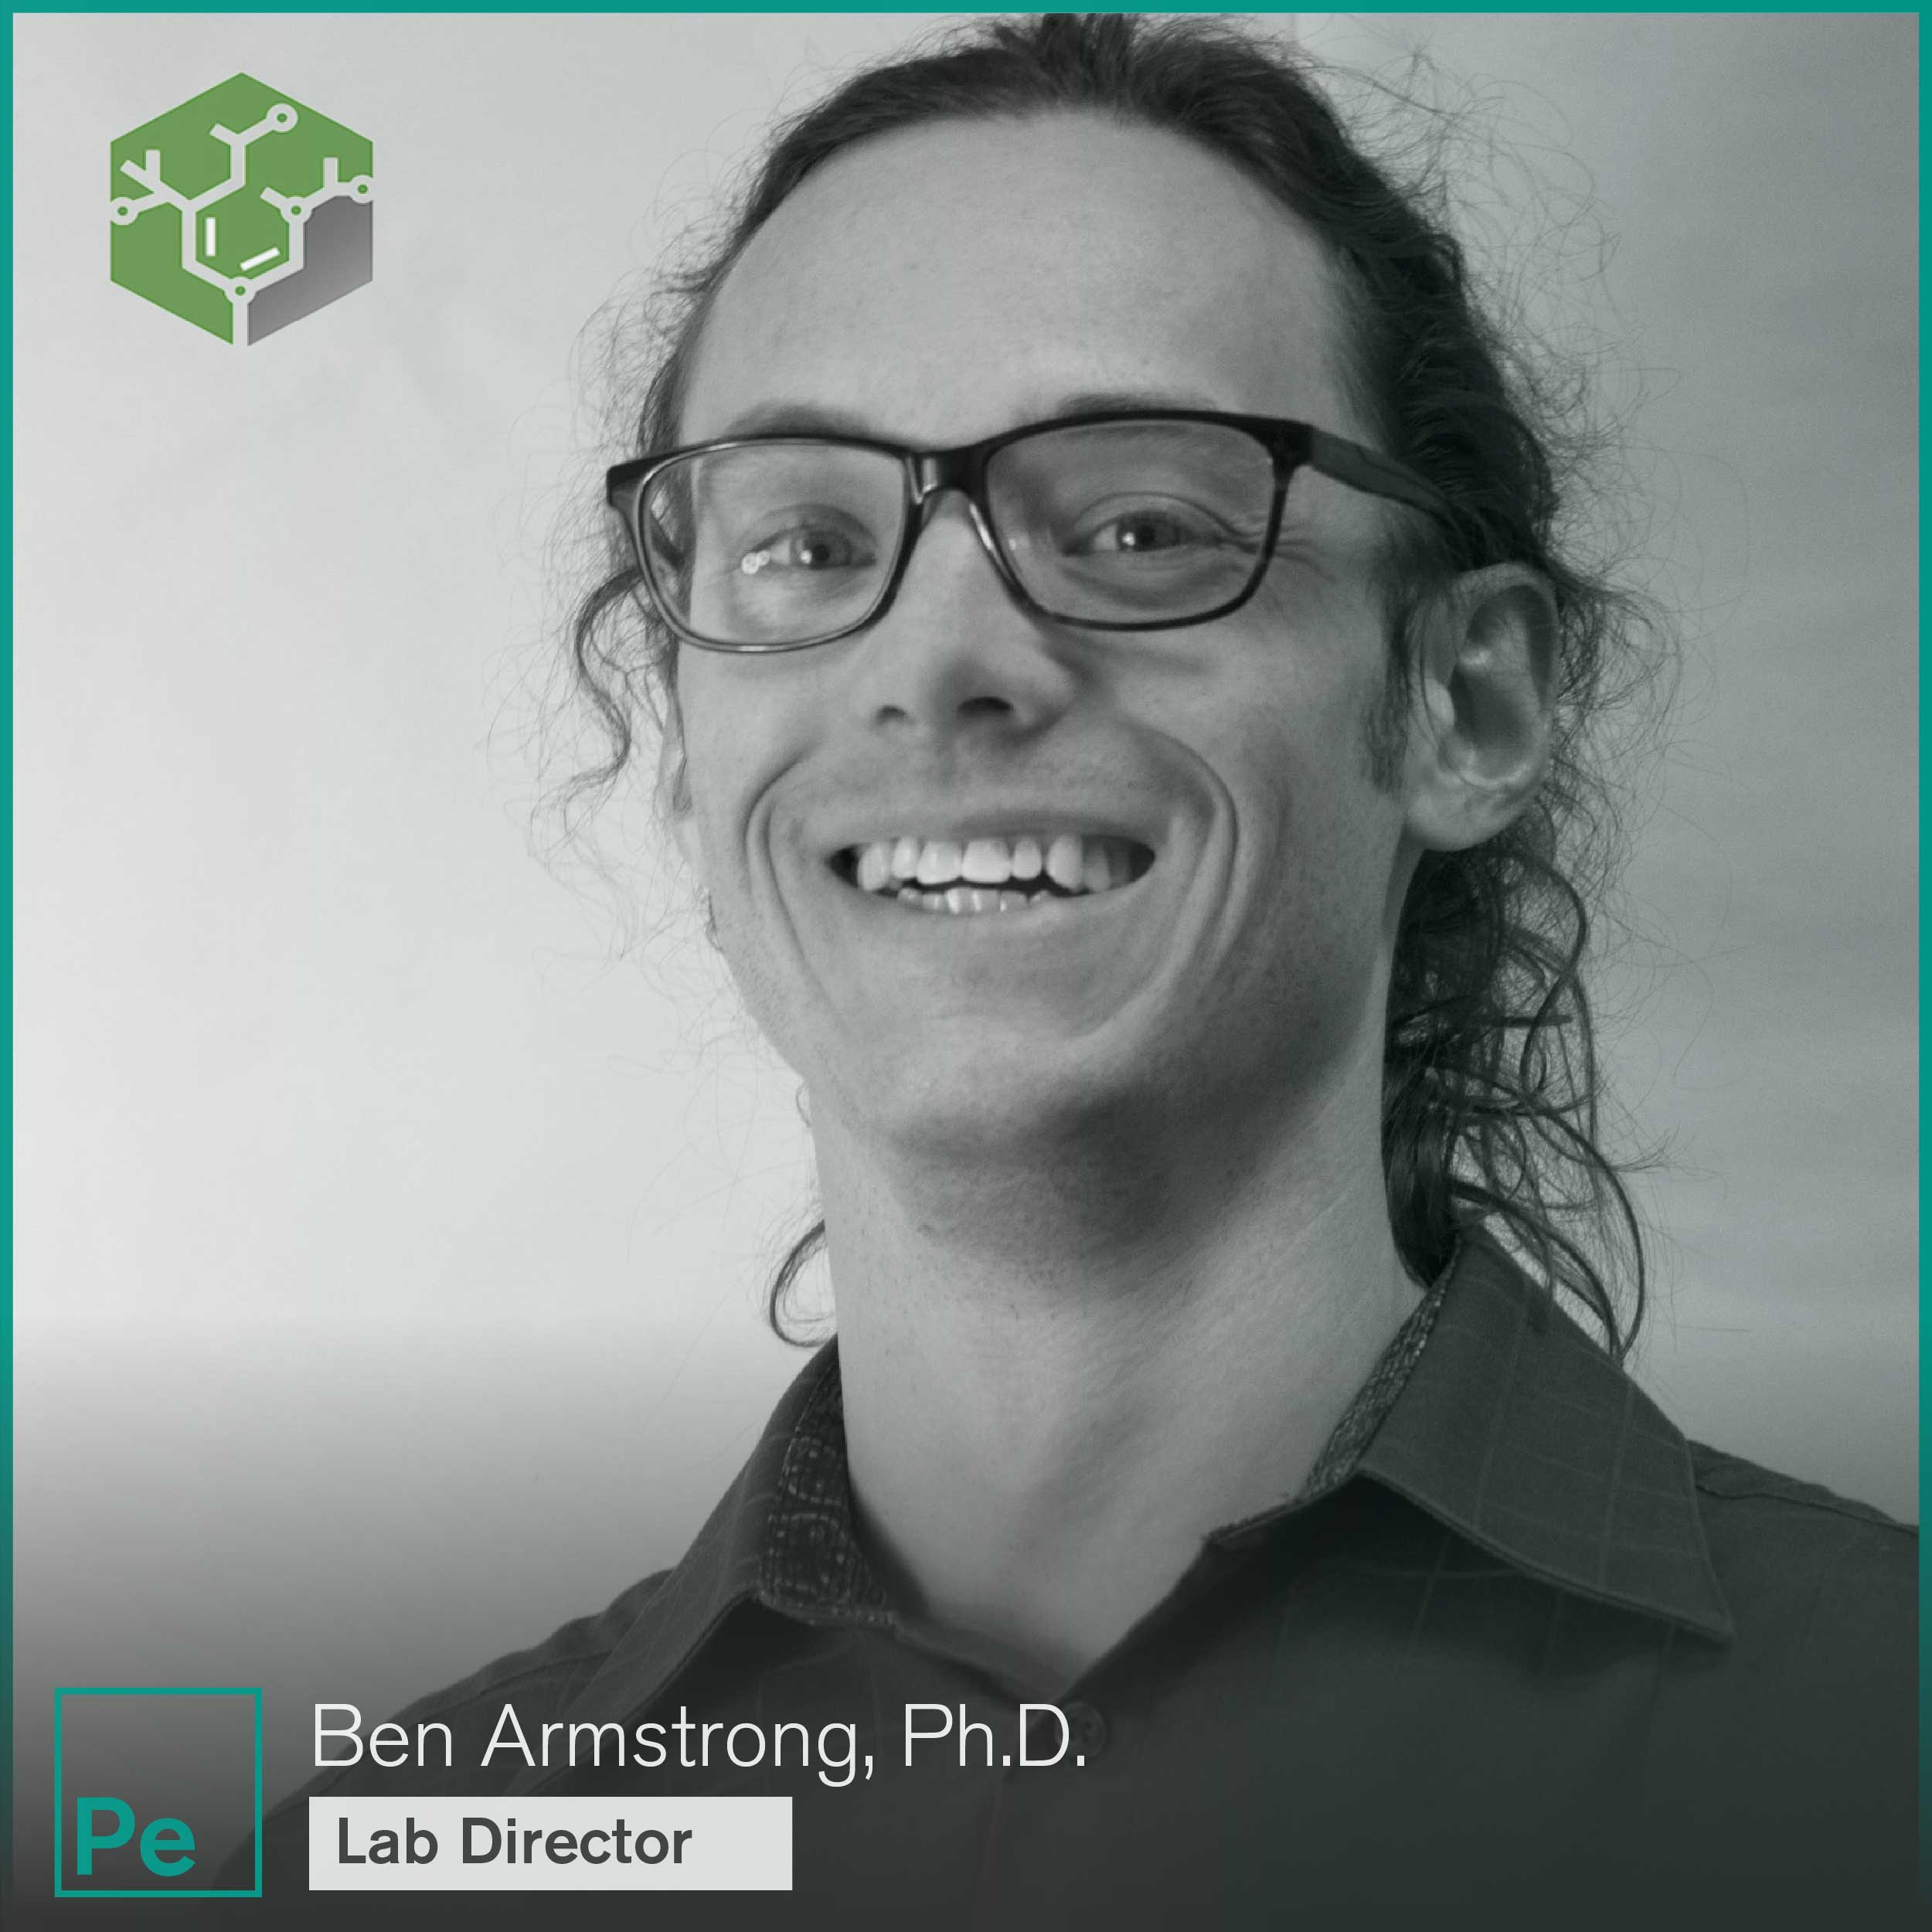 Ben Armstrong, Ph.D., Lab Director for Juniper Analytics, a cannabis testing lab in Bend, Oregon